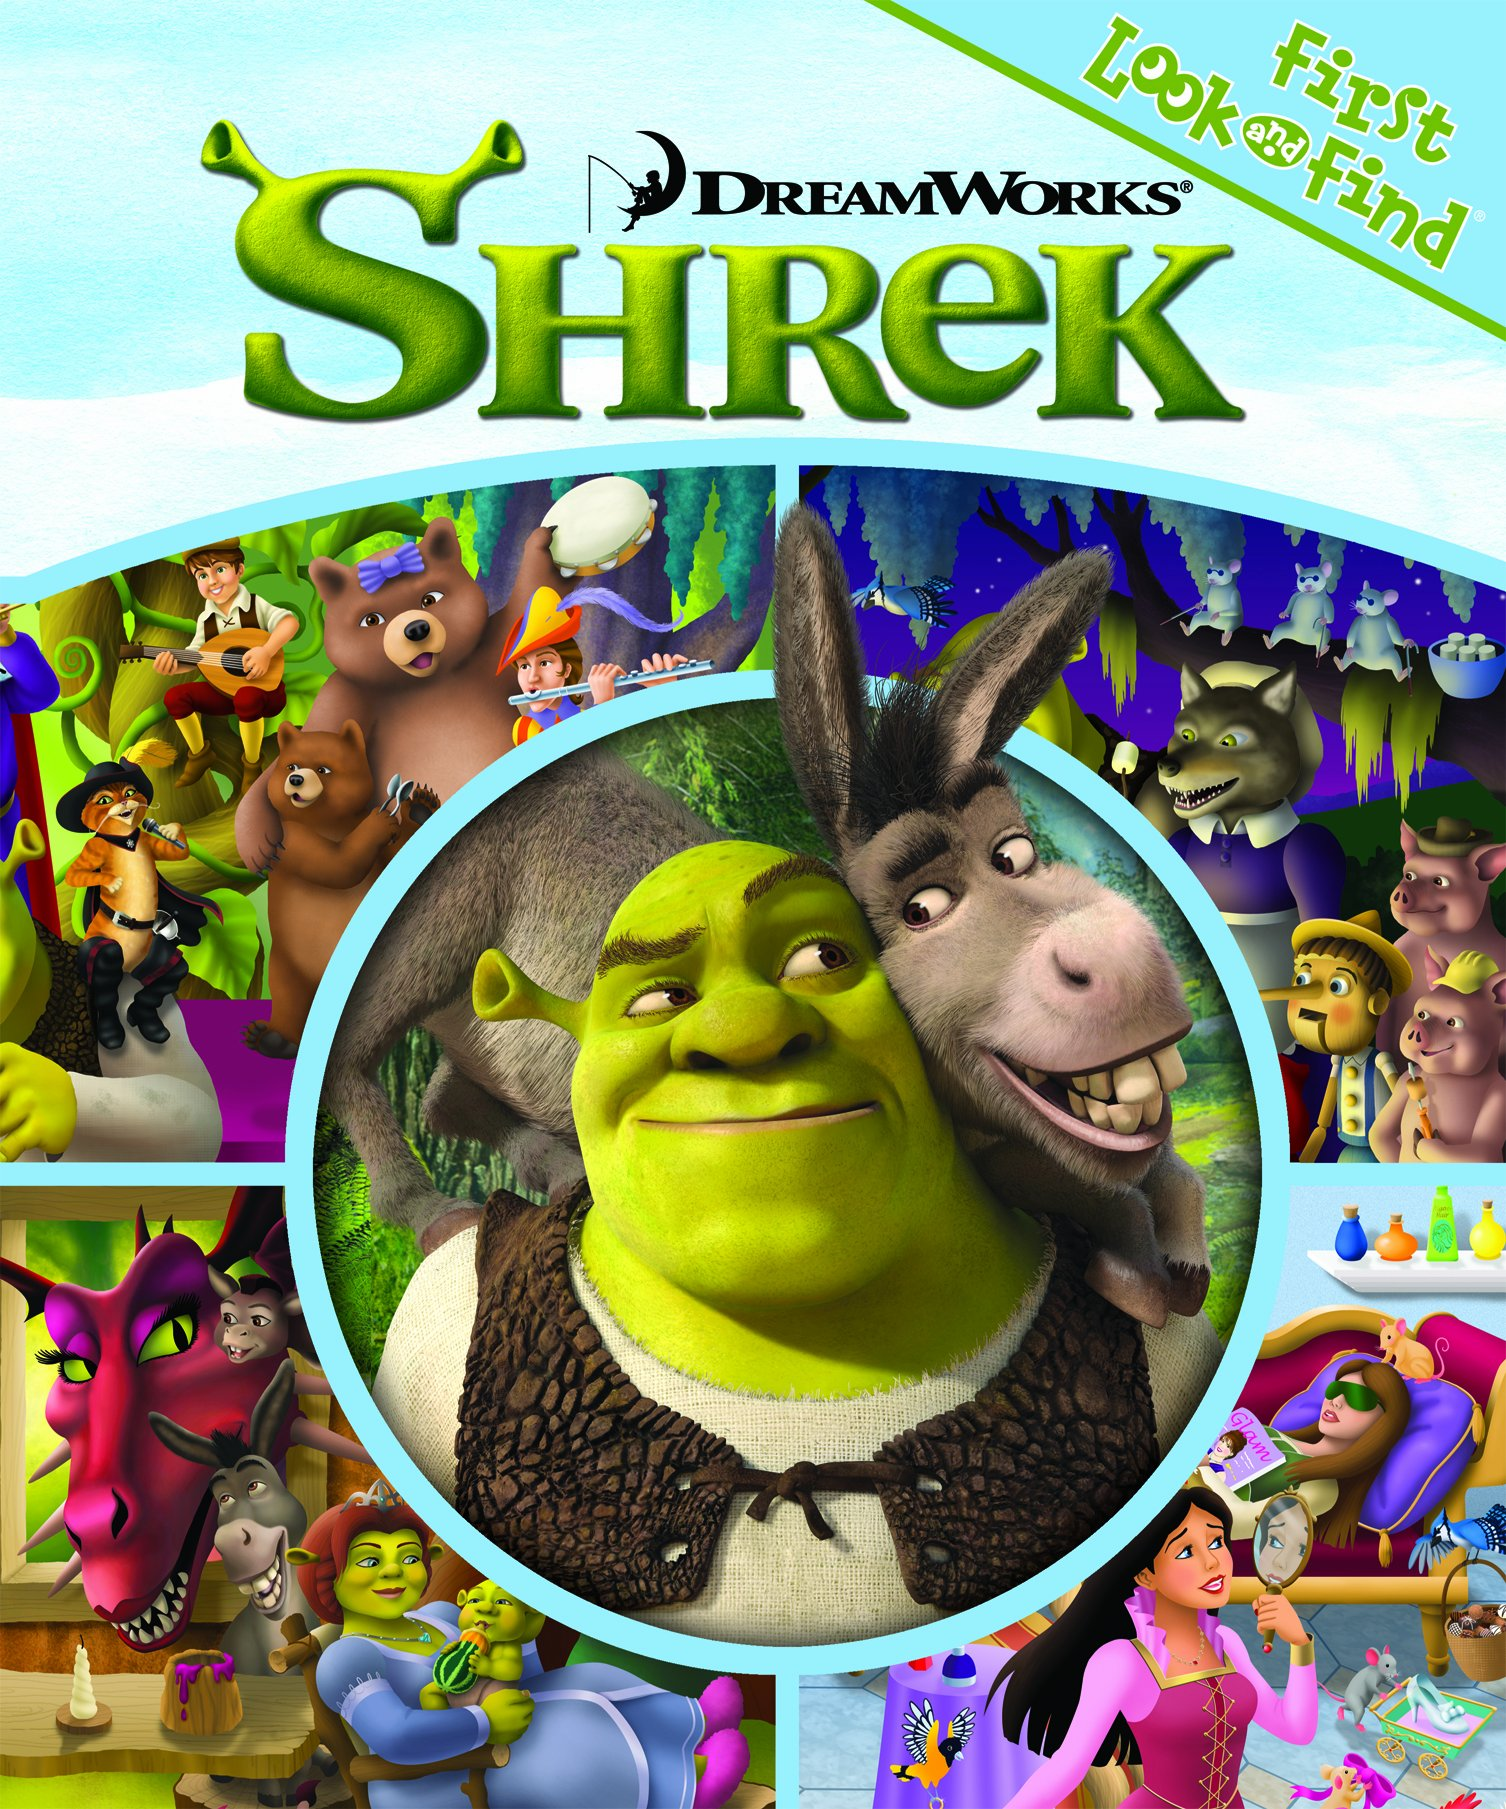 First Look And Find Shrek Editors Of Publications International Ltd Editors Of Publications International Amazon Com Books